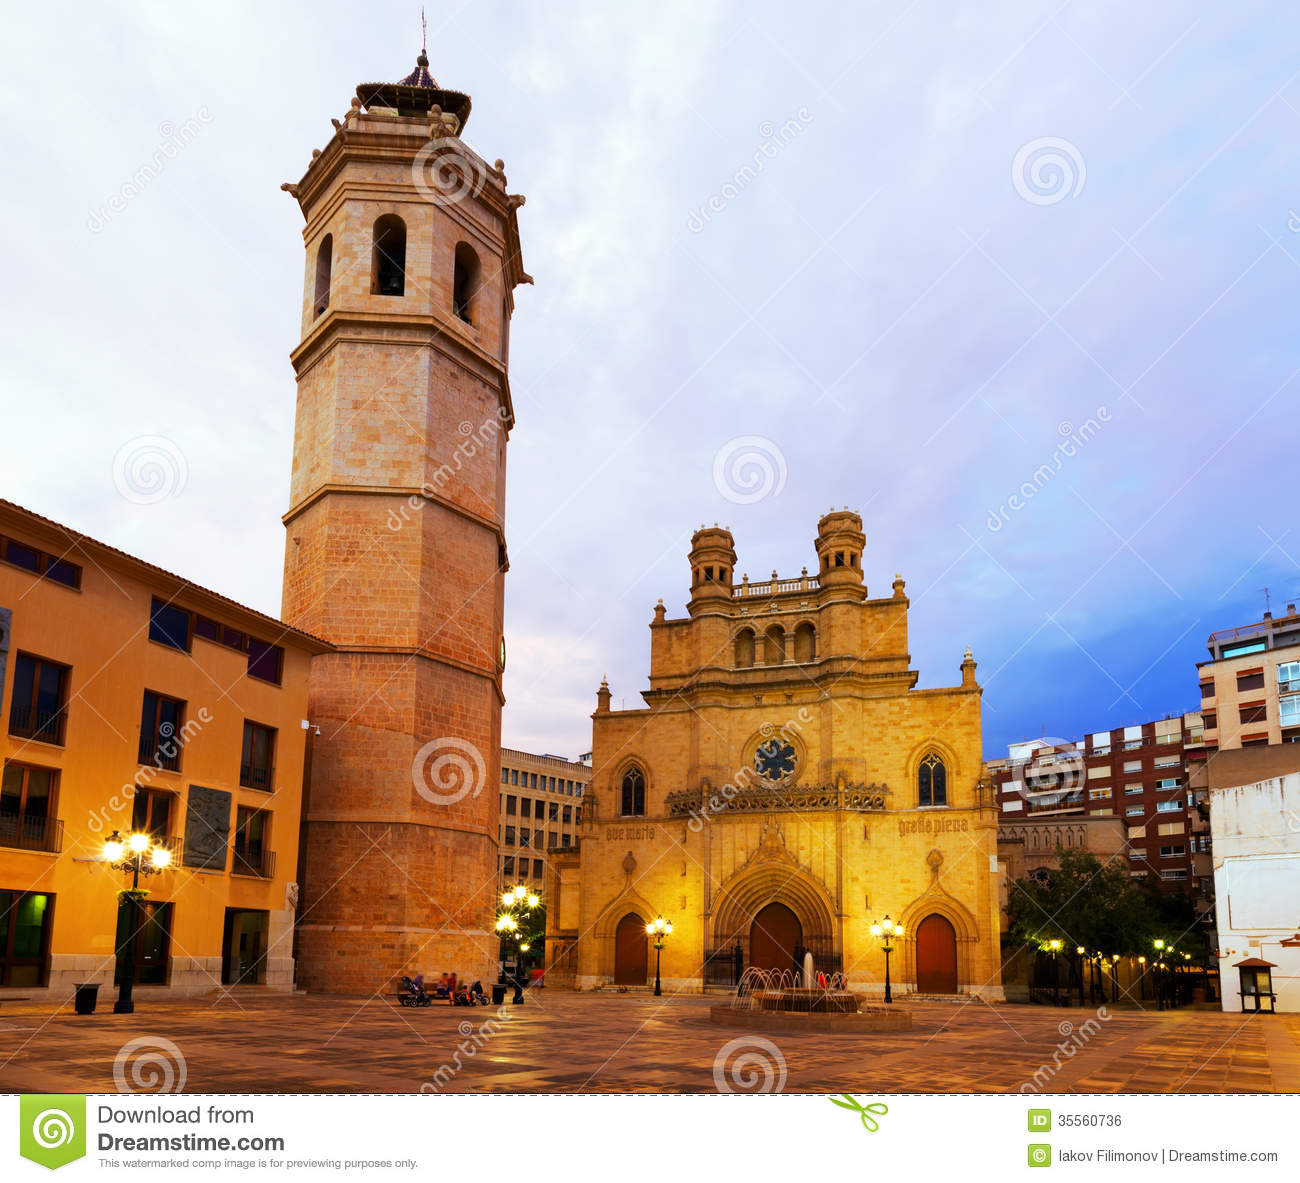 Fadri tower and gothic cathedral castellon de la plana stock photo image 35560736 - Muebles en castellon dela plana ...